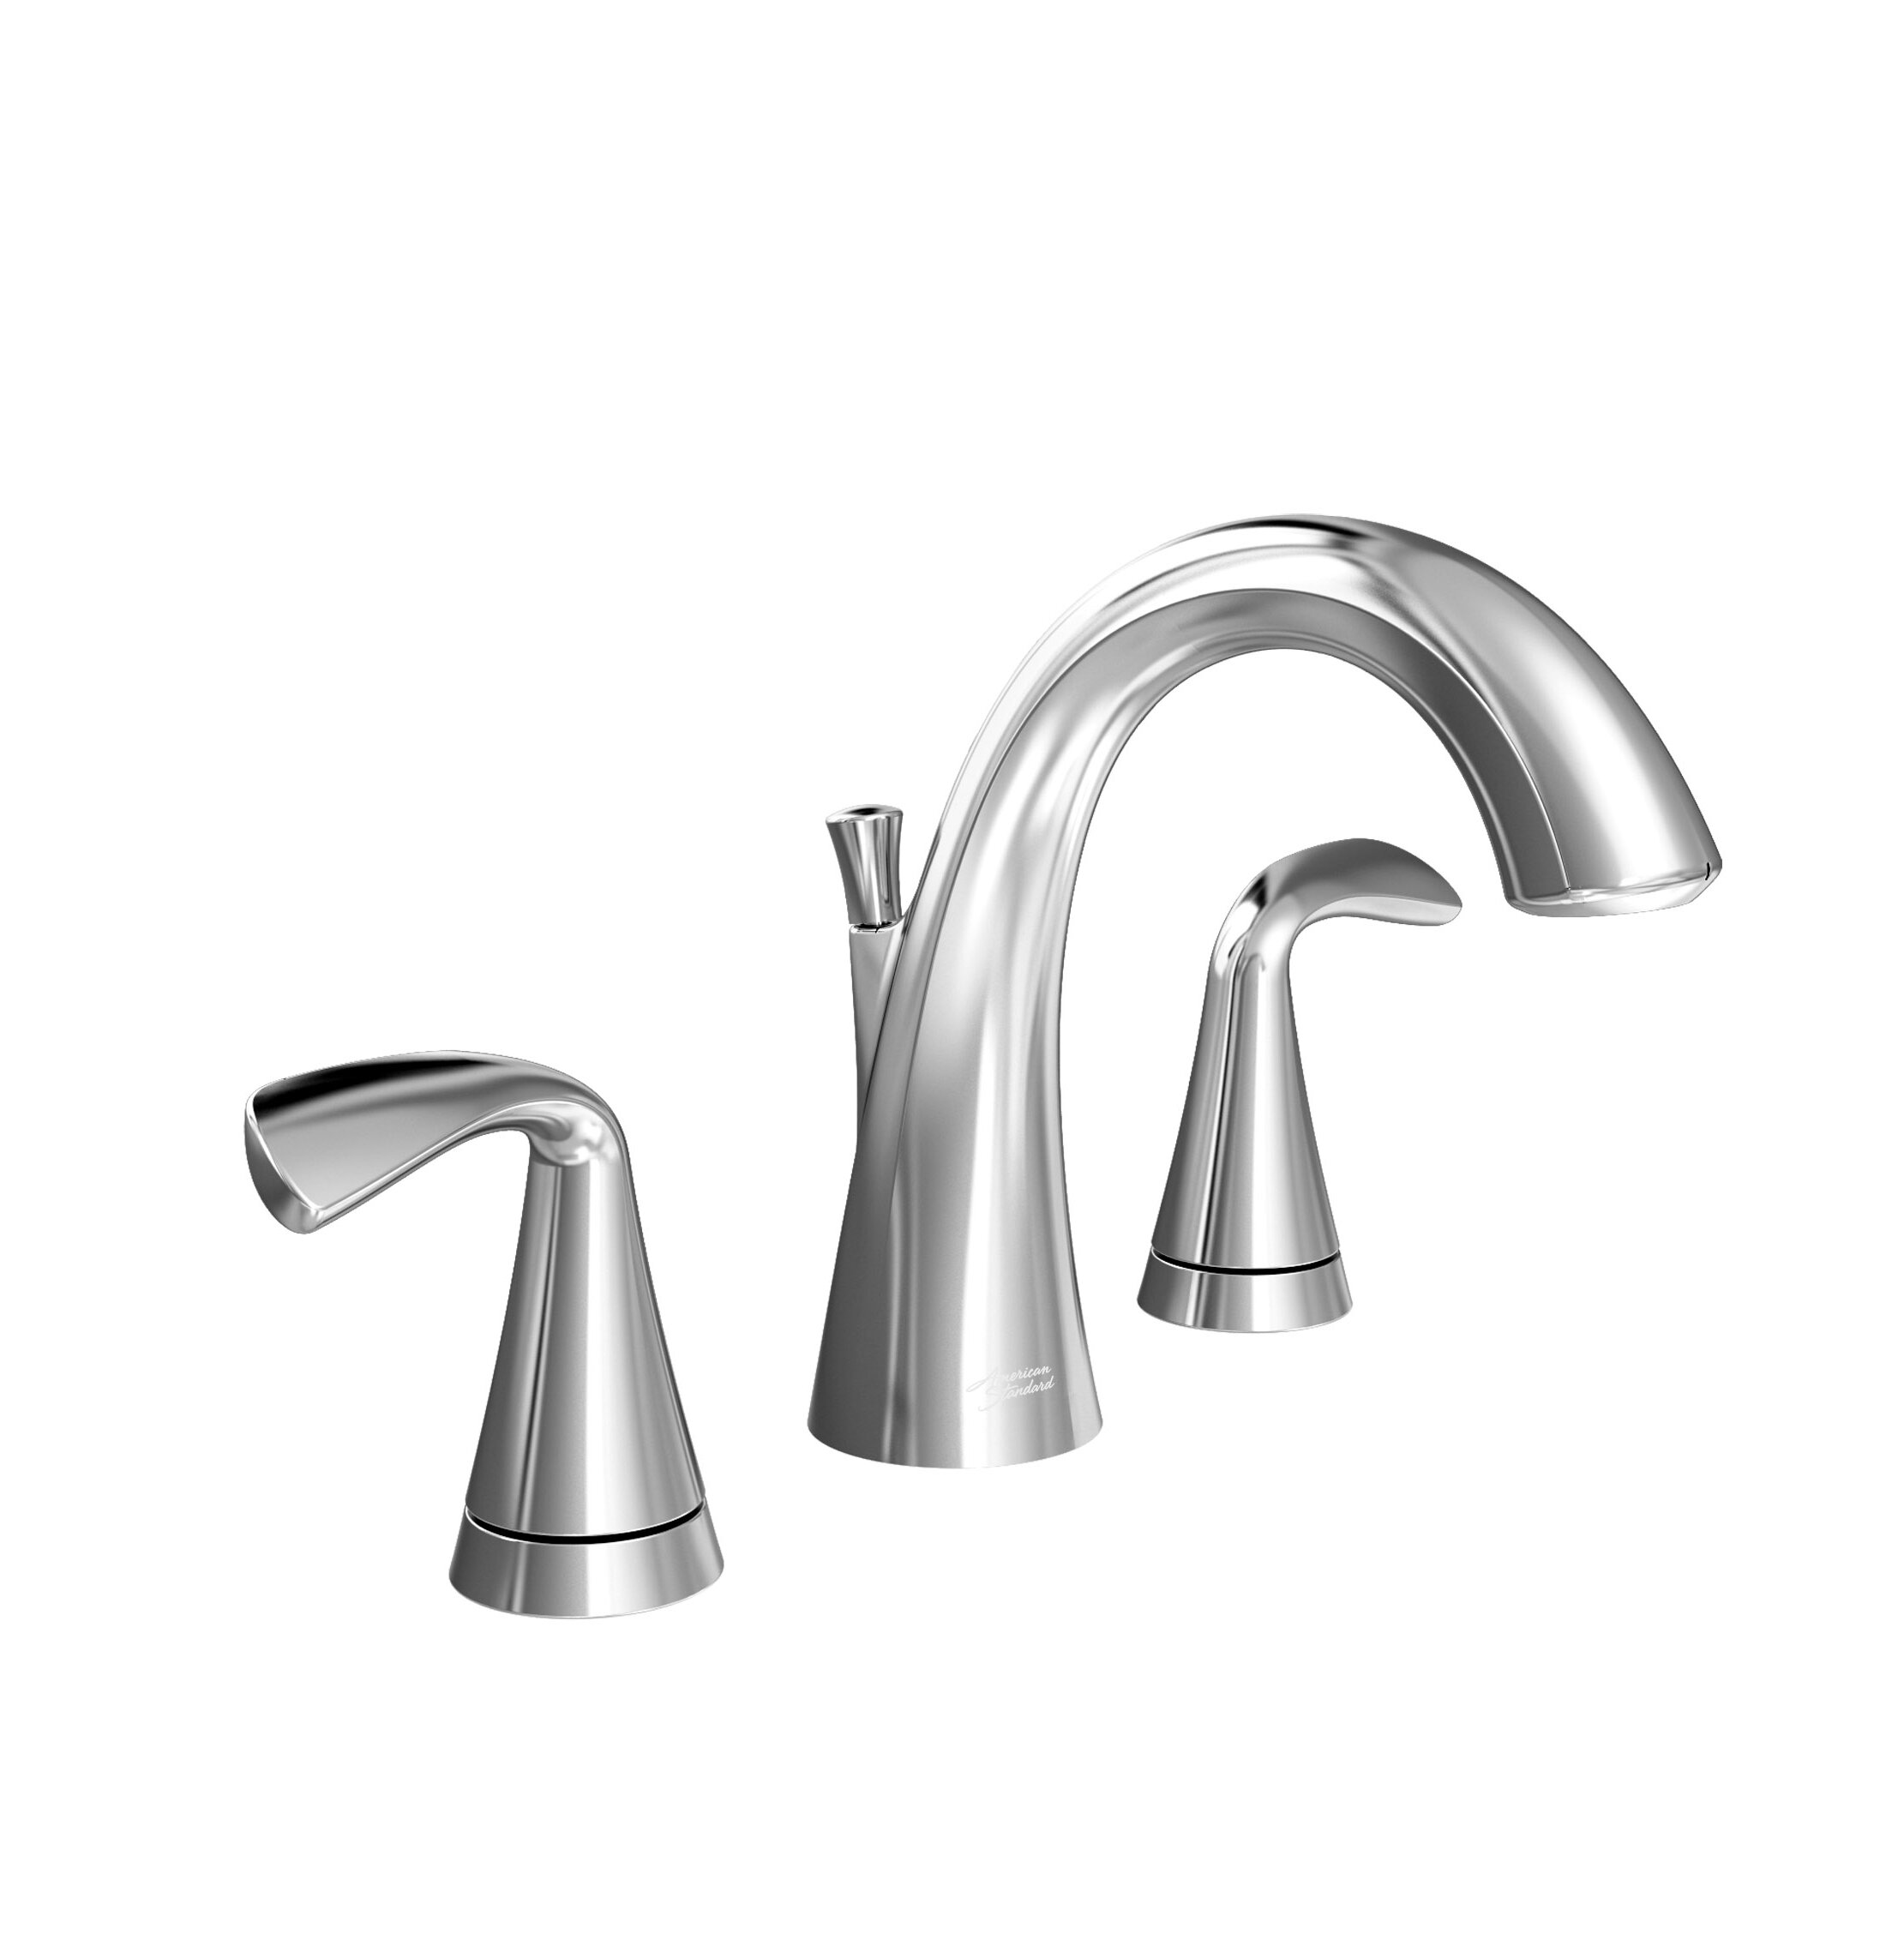 American Standard Fluent Widespread Bathroom Faucet With Drain Parts Moen Sink Home Improvement Build Com Assembly Reviews Wayfair